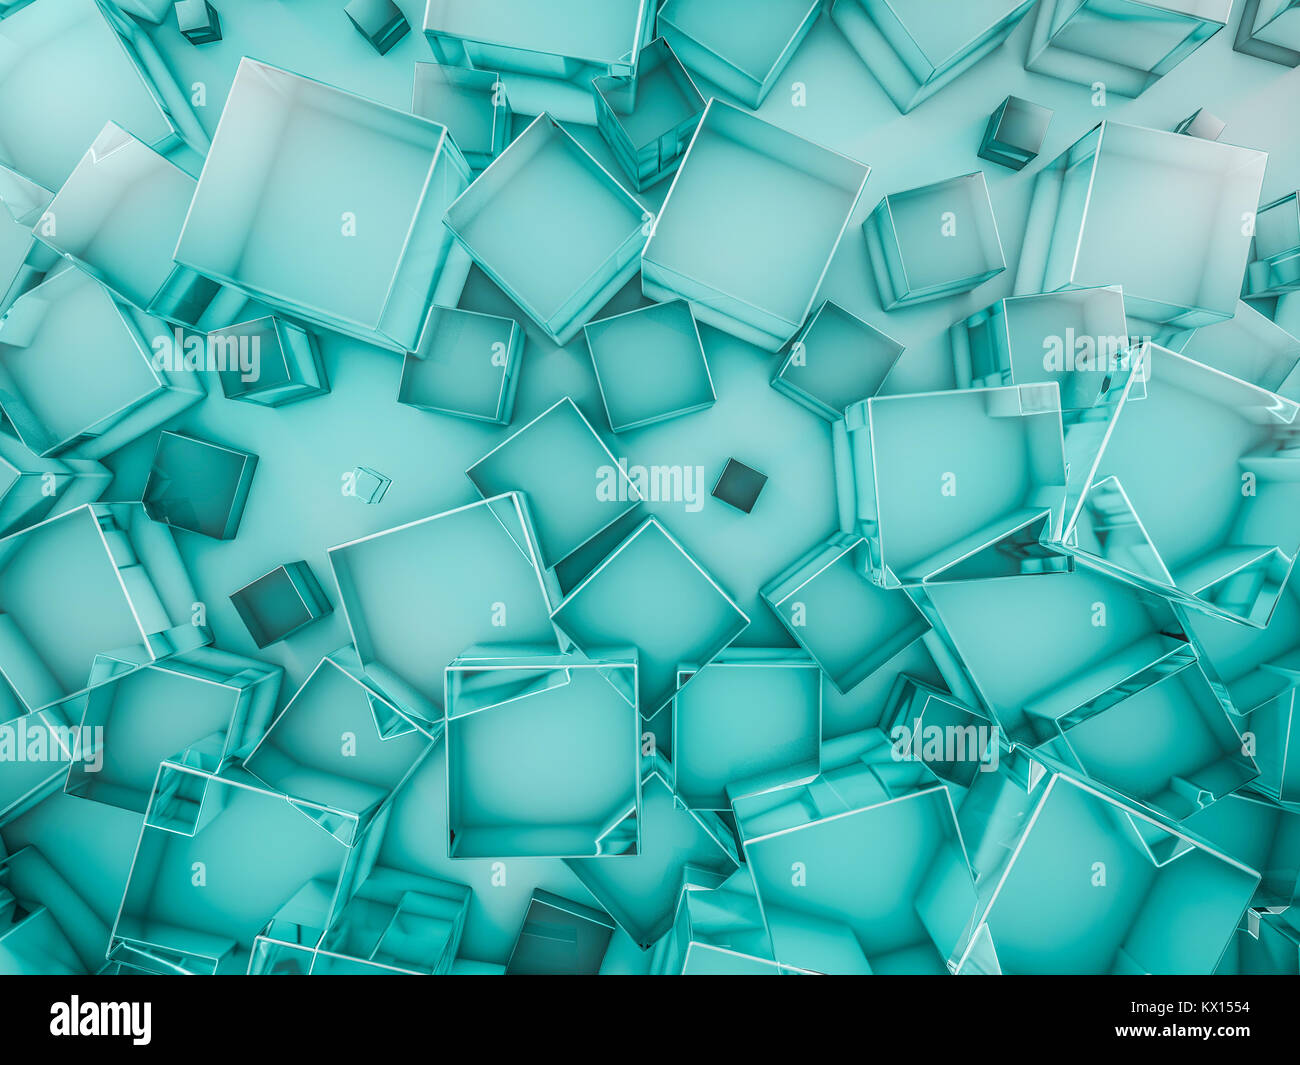 Hexagon abstract glass background. 3D rendering - Stock Image